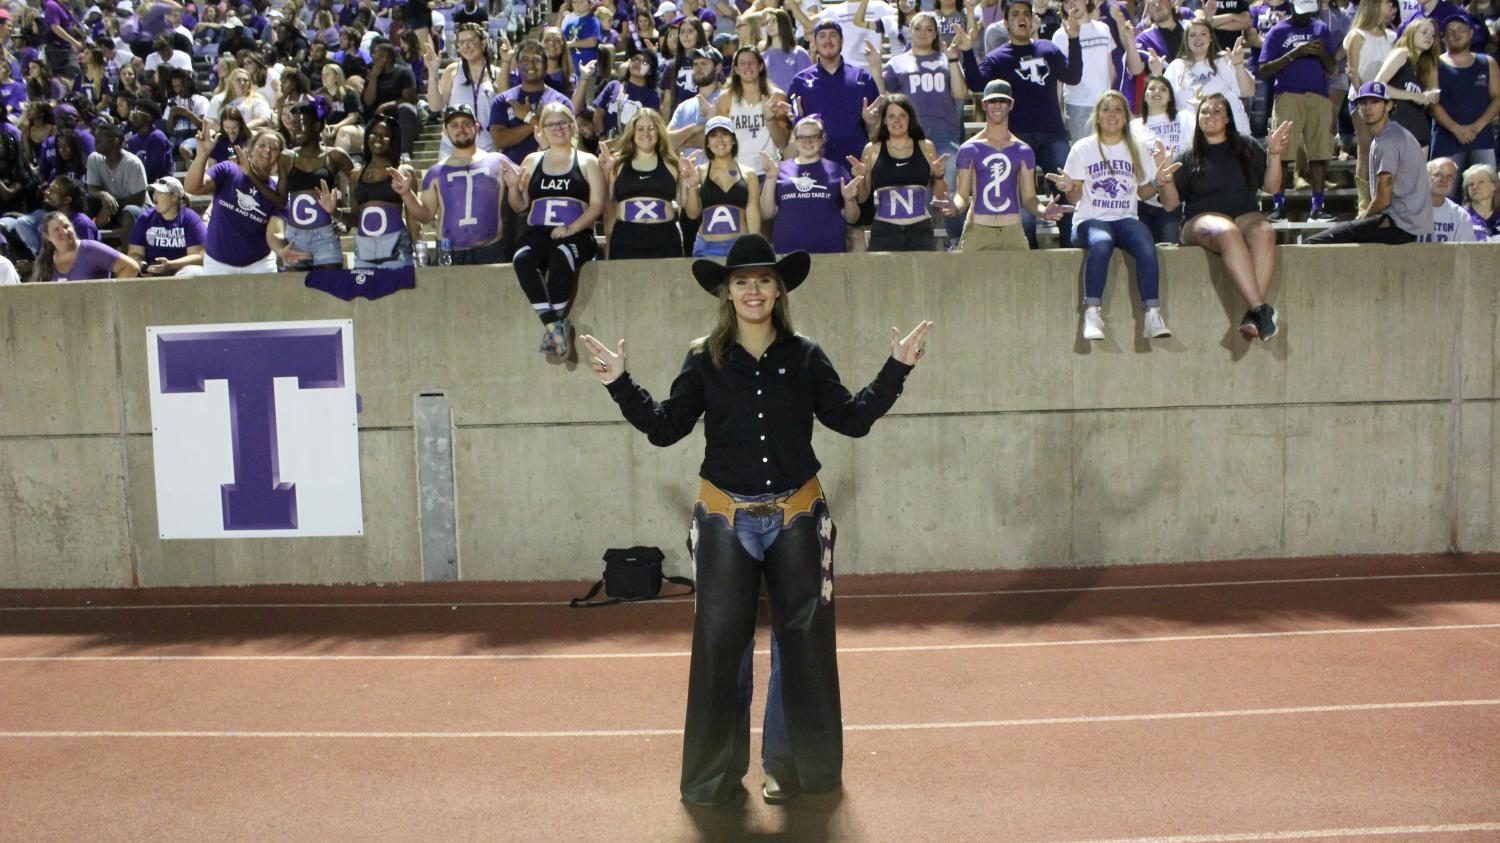 Gambrell%2C+Texan+Rider%2C+throws+her+guns+up+with+PANKUS+while+helping+students+to+cheer+on+the+Tarleton+Texans+towards+their+win+last+Saturday+at+Memorial+Stadium.+